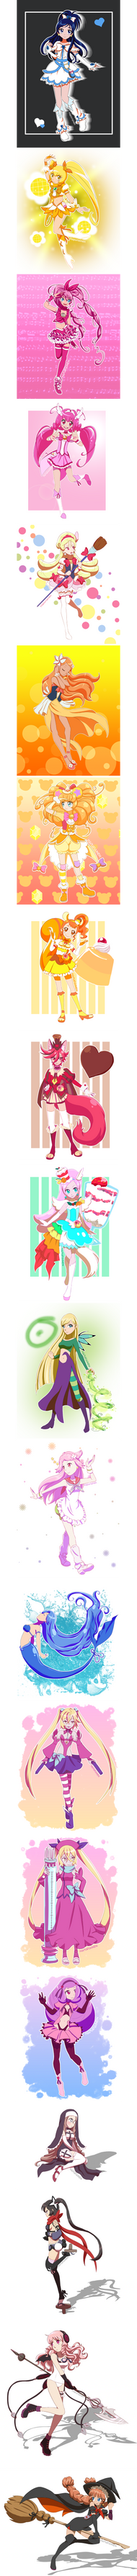 Magical girls 7 by Hapuriainen